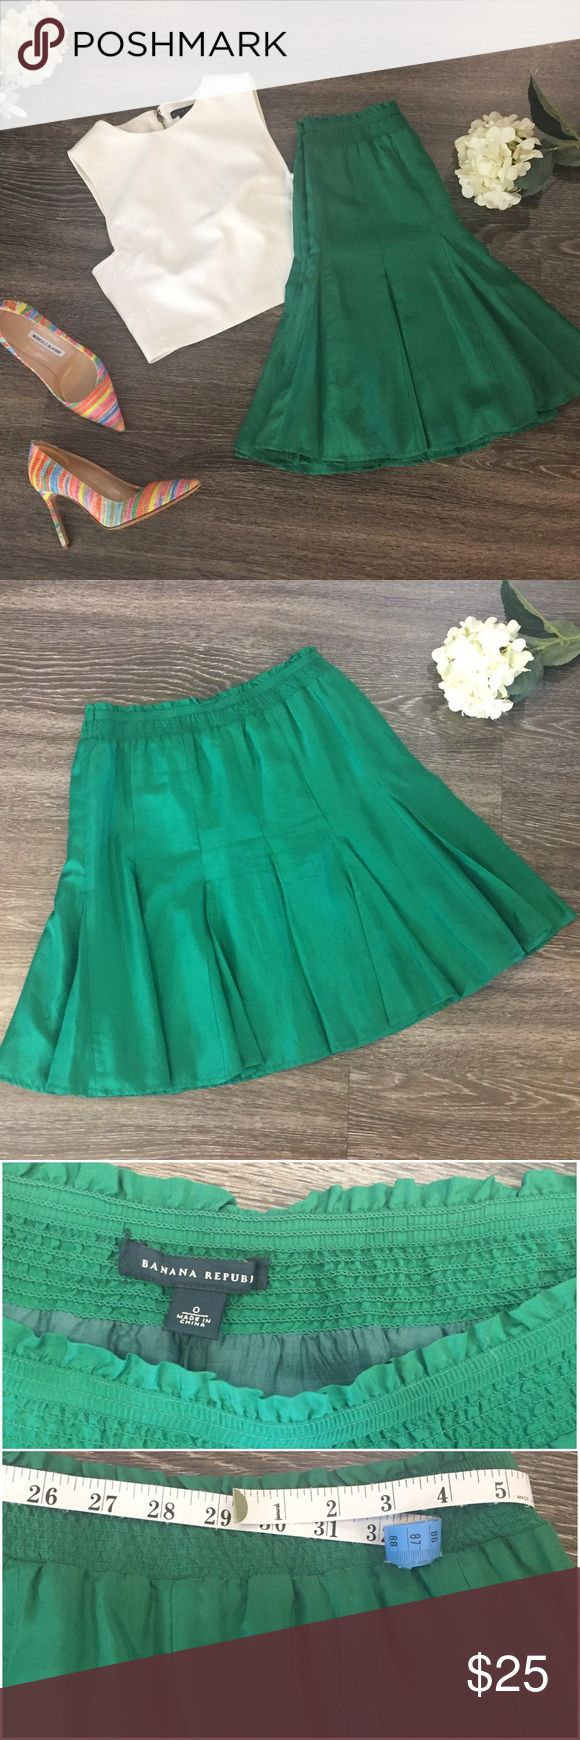 """Banana Republic Silk Skirt, Size 0 Gorgeous emerald green full silk skirt is sure to stand out in any crowd! Pair with a white top and neutral heels to let the skirt speak or bright heels for an extra pop! Skirt features elasticized waist so can fit sizes larger than zero. 💯 silk, fully lined. Measures approx 20"""" in length and 29"""" at the waist. Tiny group of stains (last photo) which are not appreciable; I only noticed them upon thorough inspection prior to listing. From Banana Republic…"""